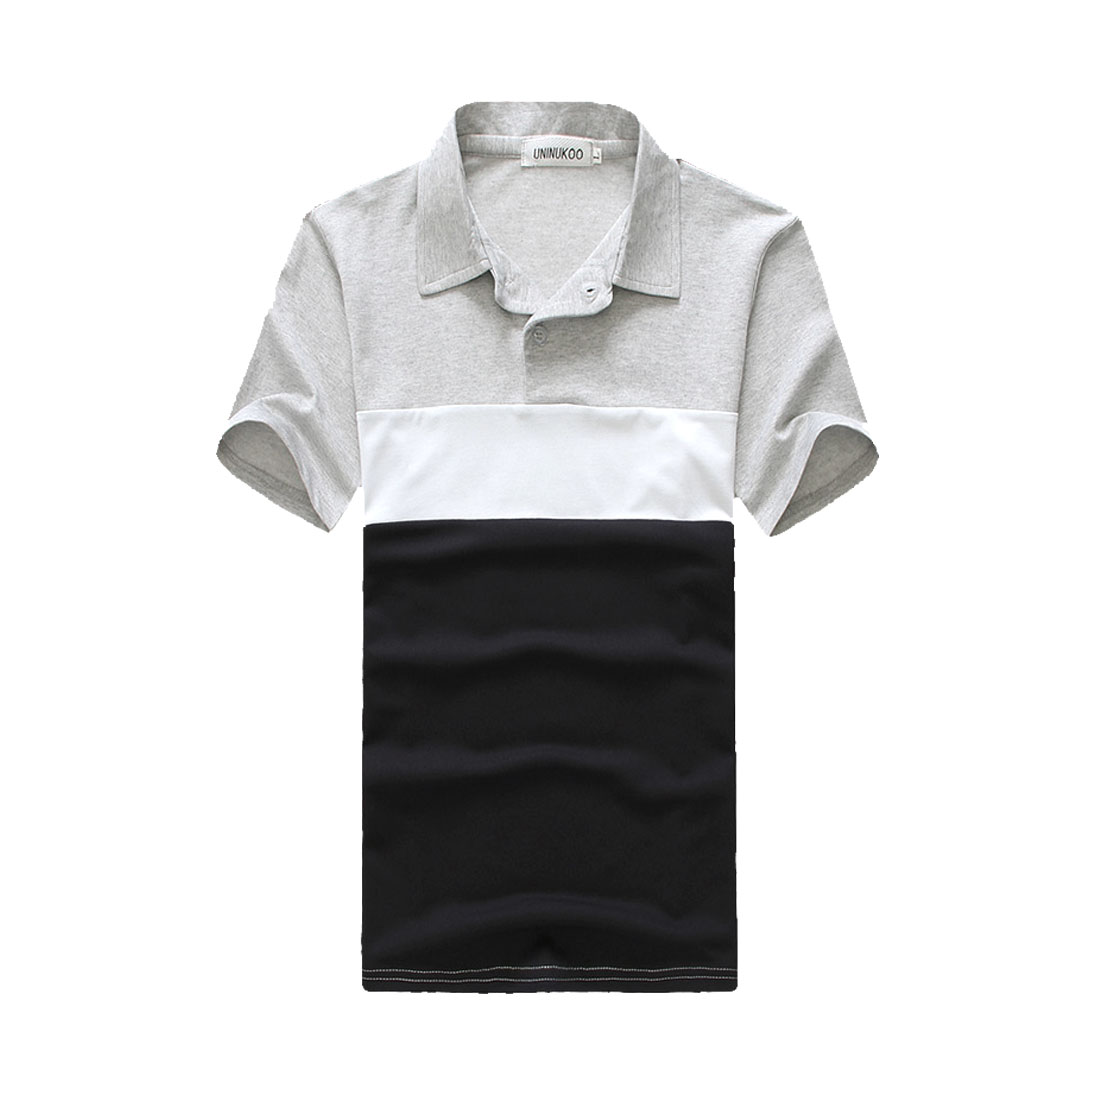 Man Short Sleeve Button Front Color Blocking Light Gray Drak Blue Polo Shirt S